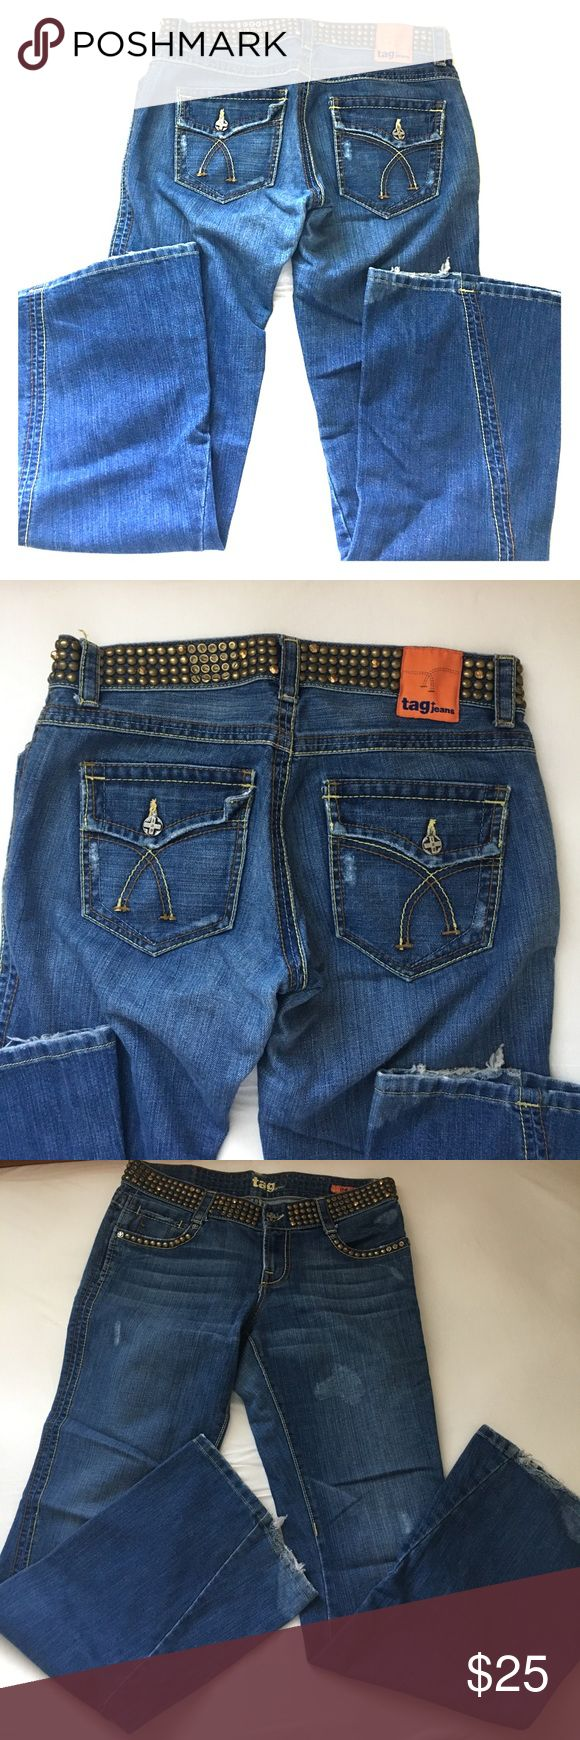 Tag Jeans with Nail heads Tag Jeans with Nail heads Tag Jeans Flare & Wide Leg